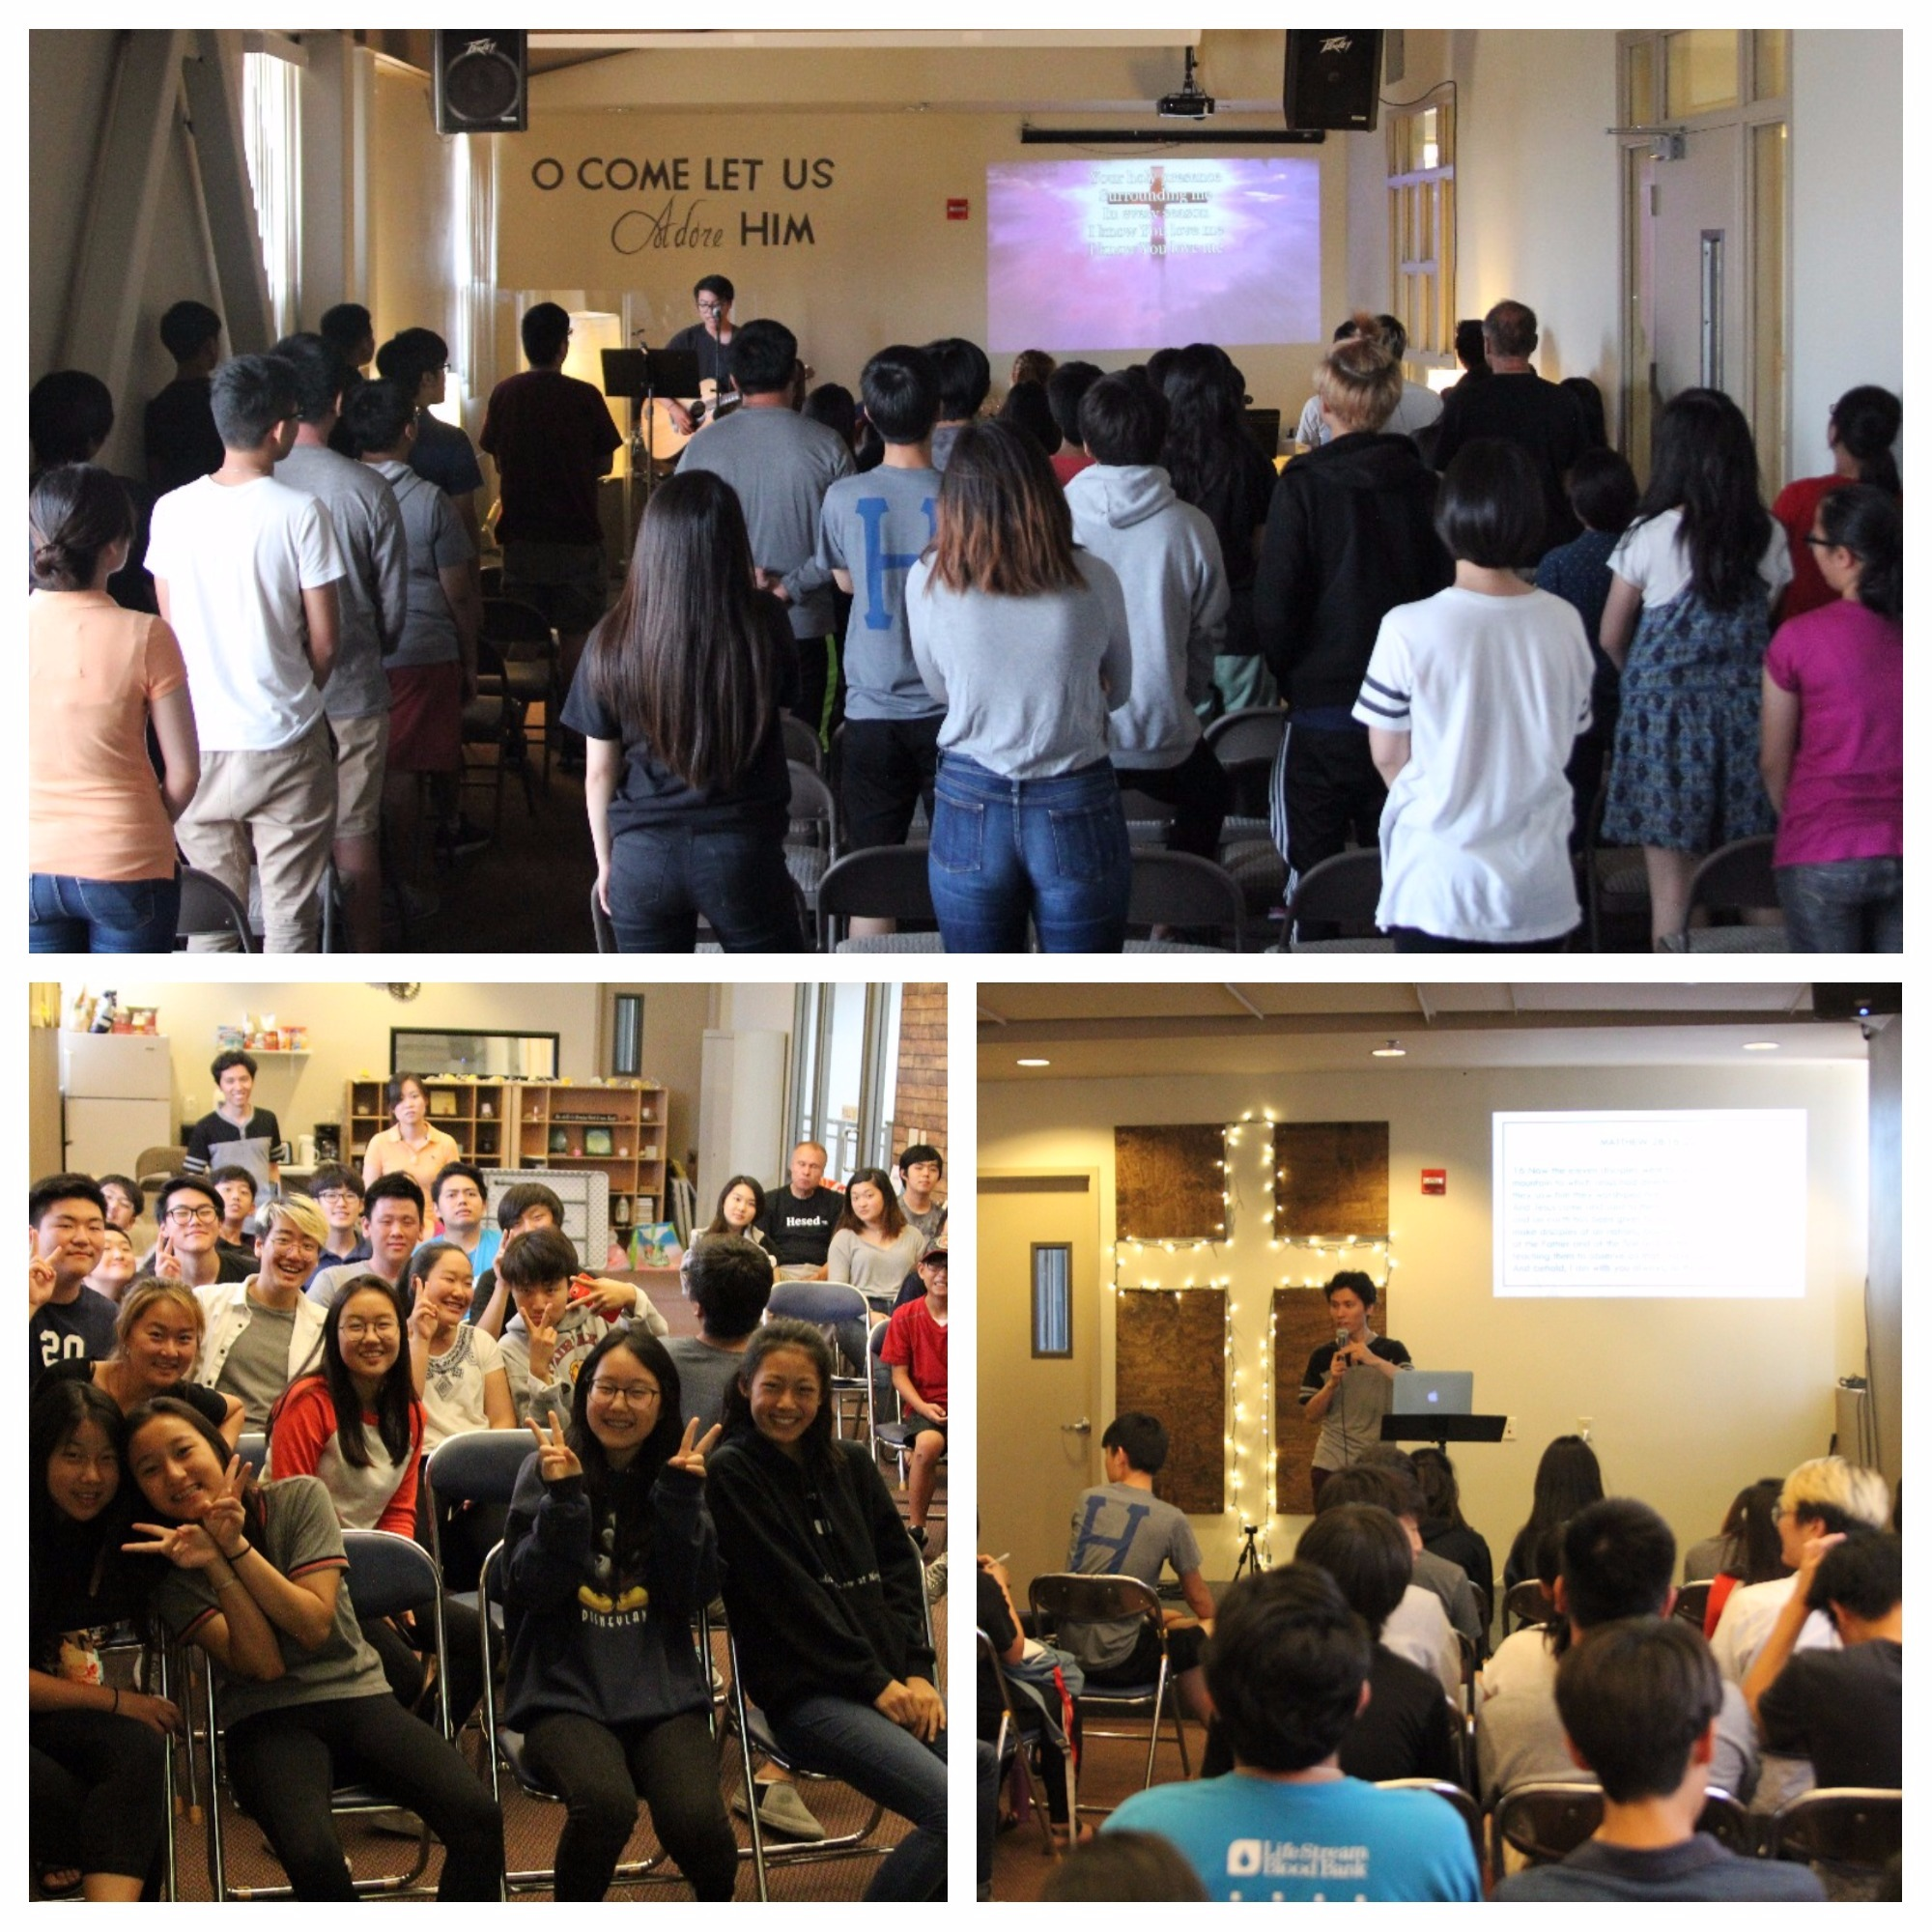 "<p>We started the day with a worship service where we packed in our hearts the first and most important ""item"" that we will take to the mission trip: the Gospel.</p>"